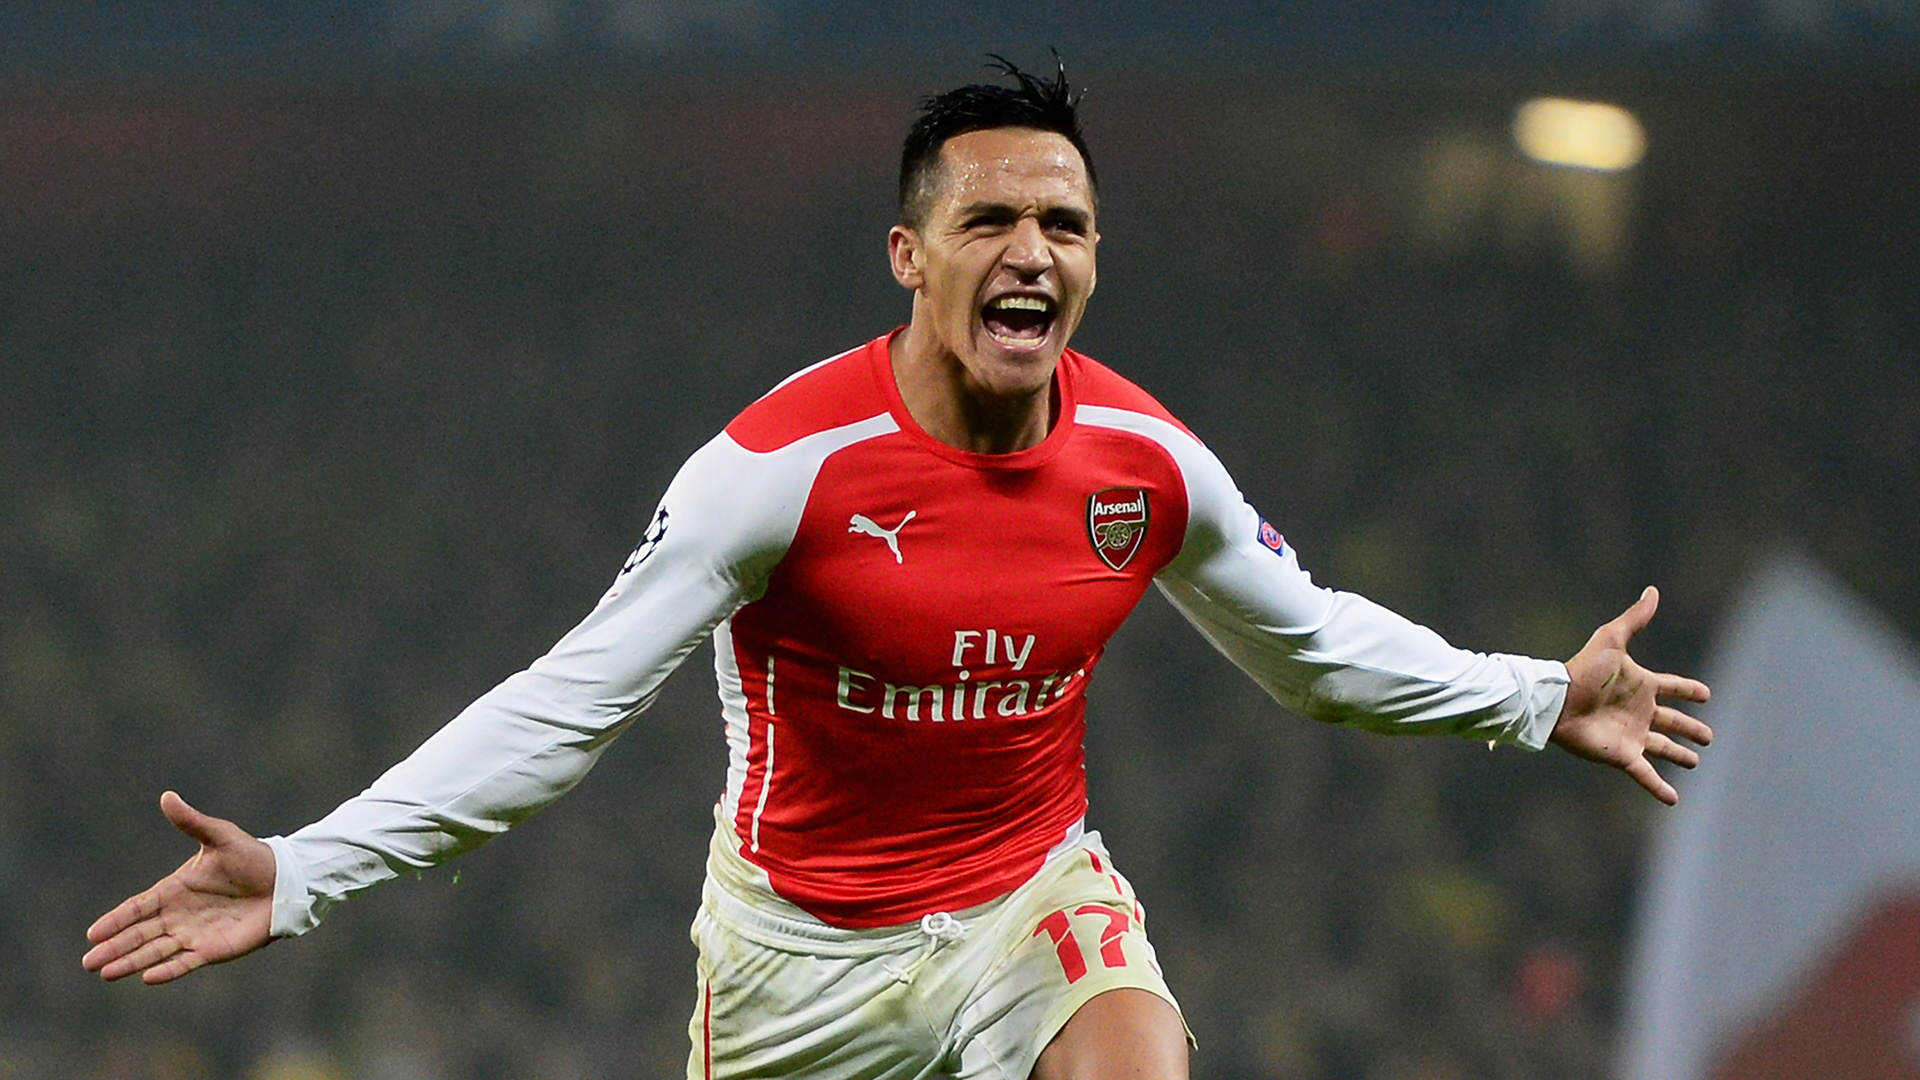 alexis5 Alexis Gets Over Manchester United Defeat In A Weird Way